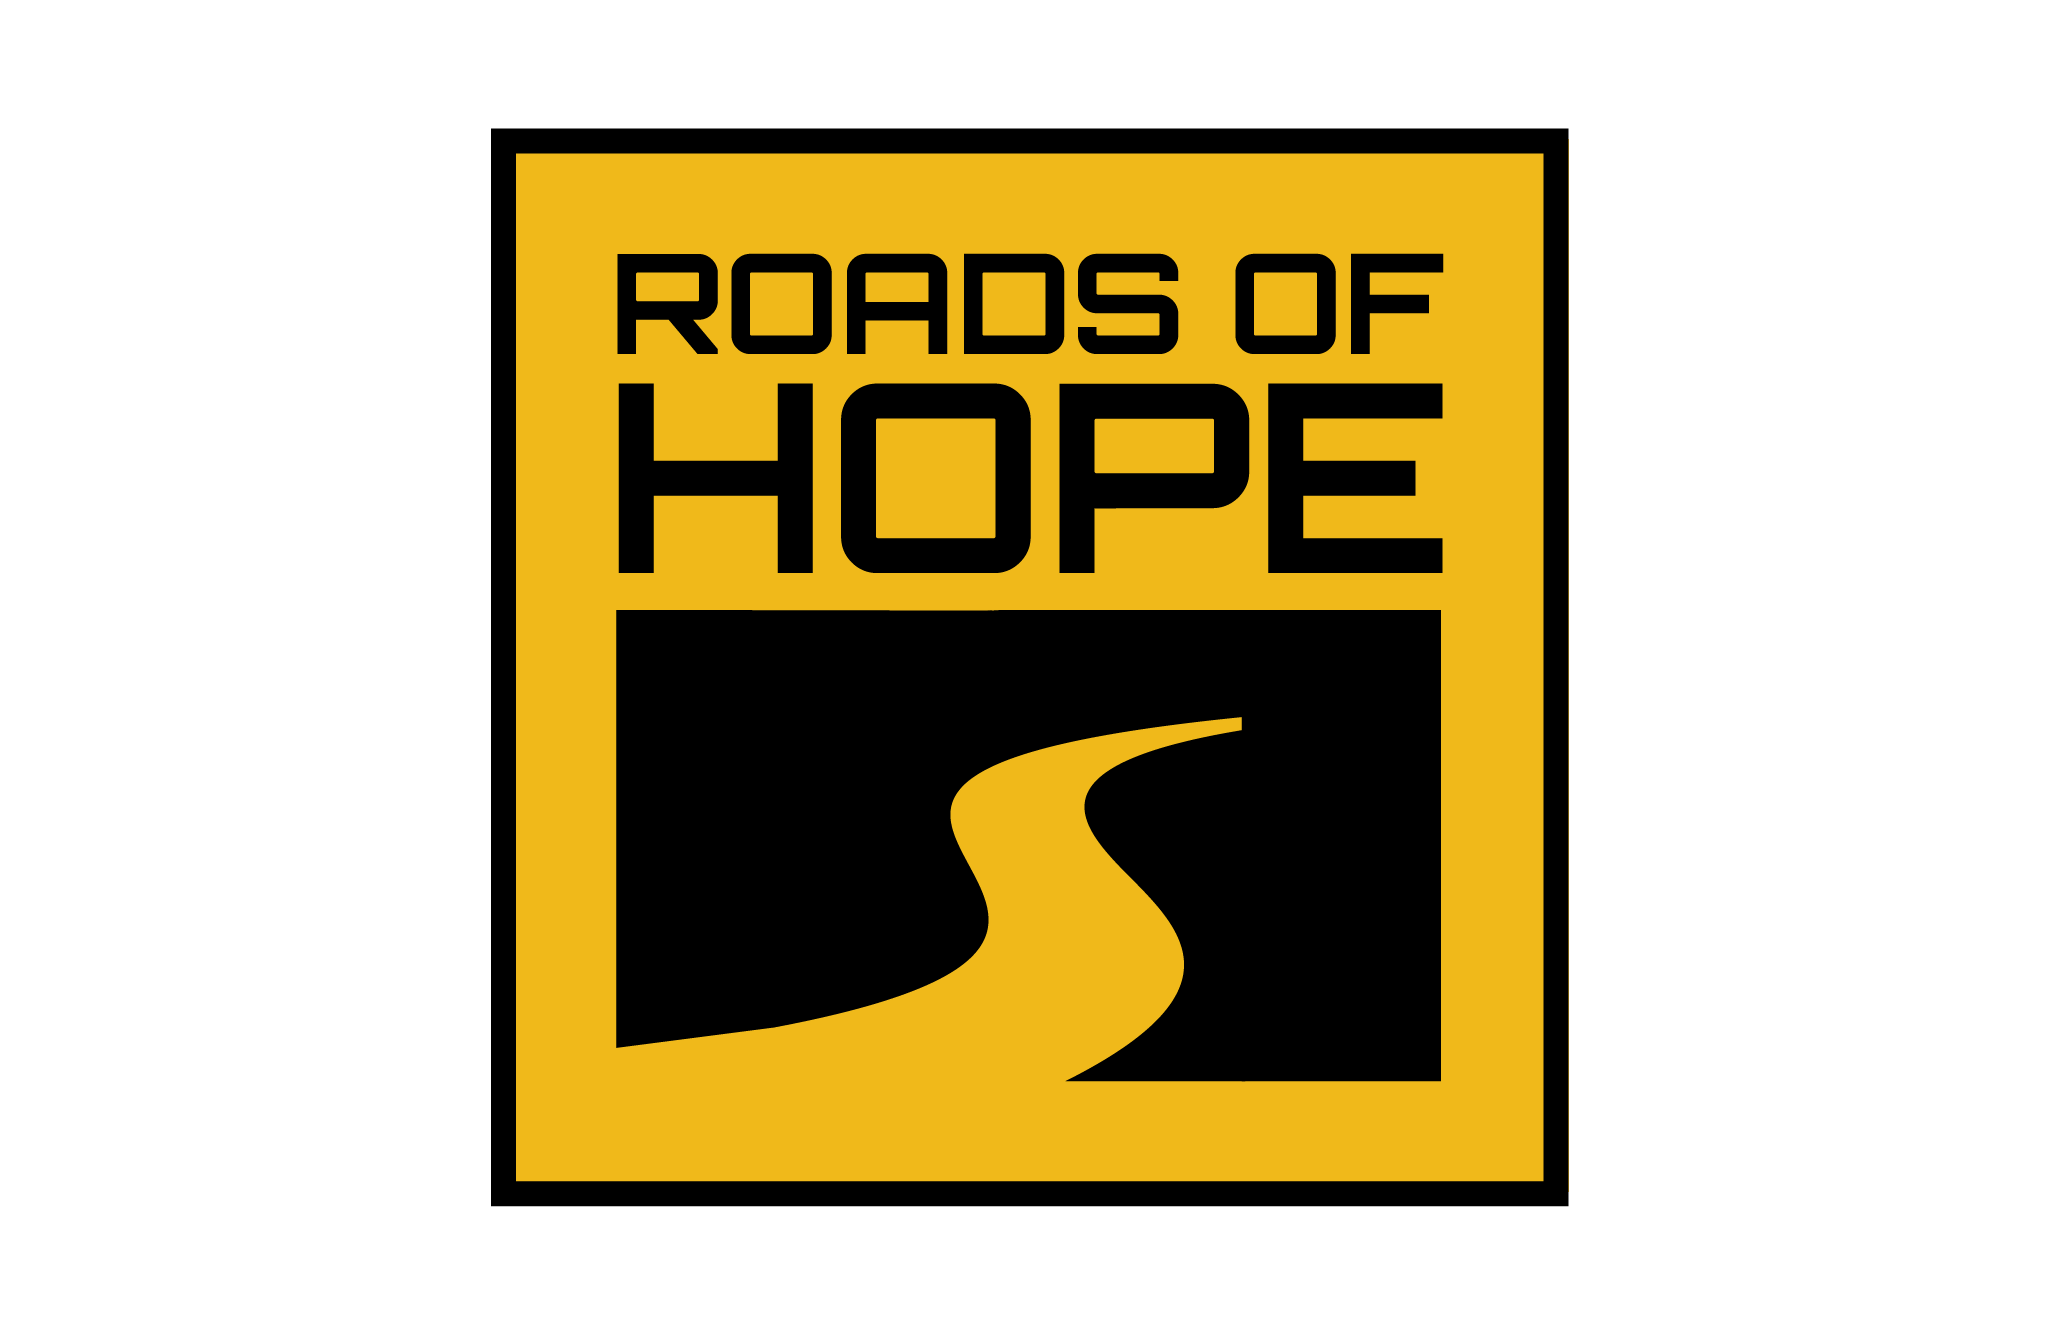 Roads of Hope